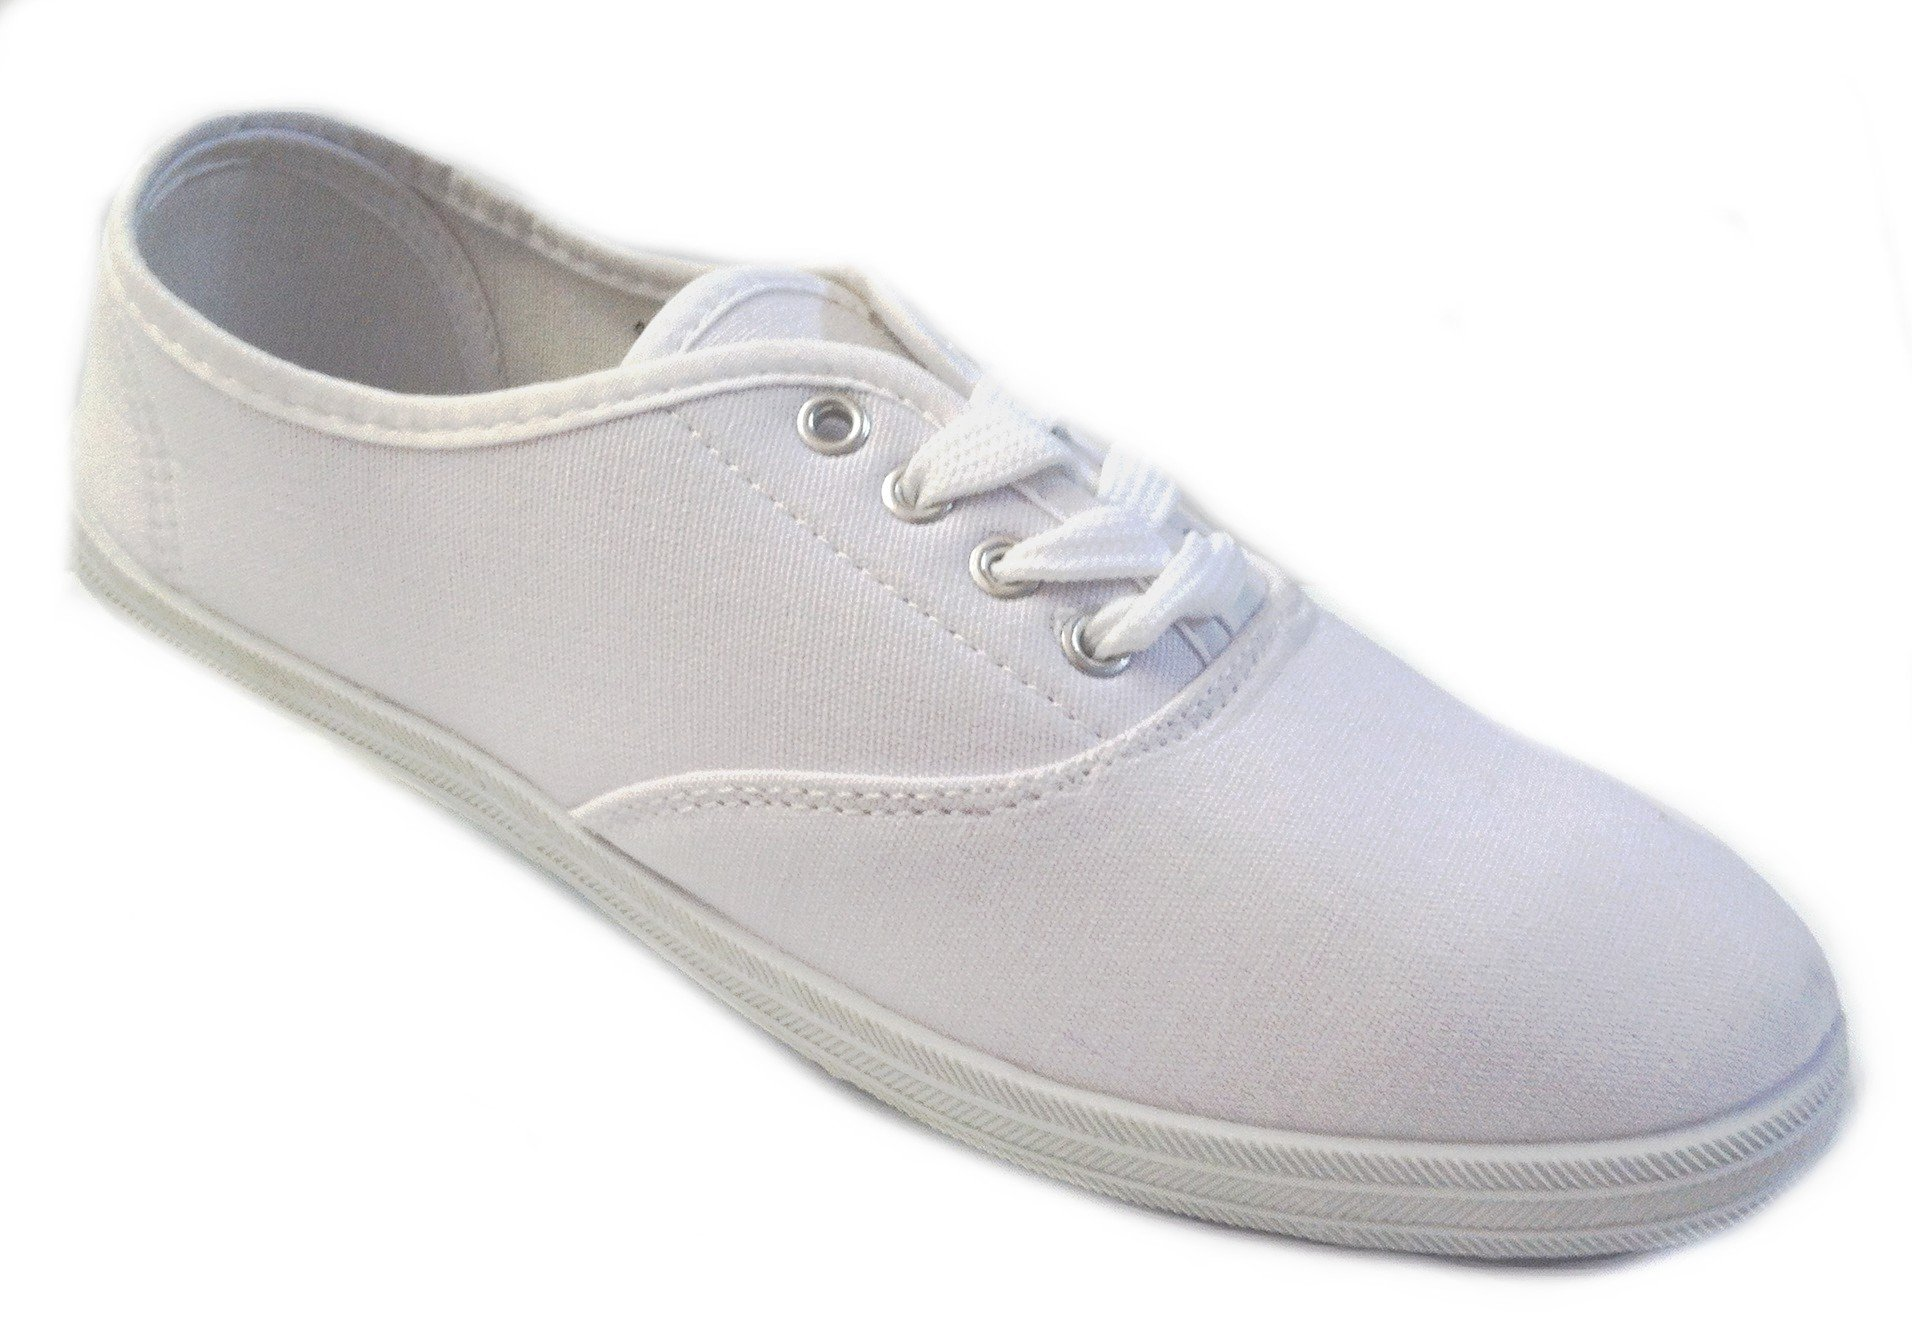 Shoes 18 Womens Canvas Shoes Lace up Sneakers 18 Colors Available (6.5 B(M) US, White 324)